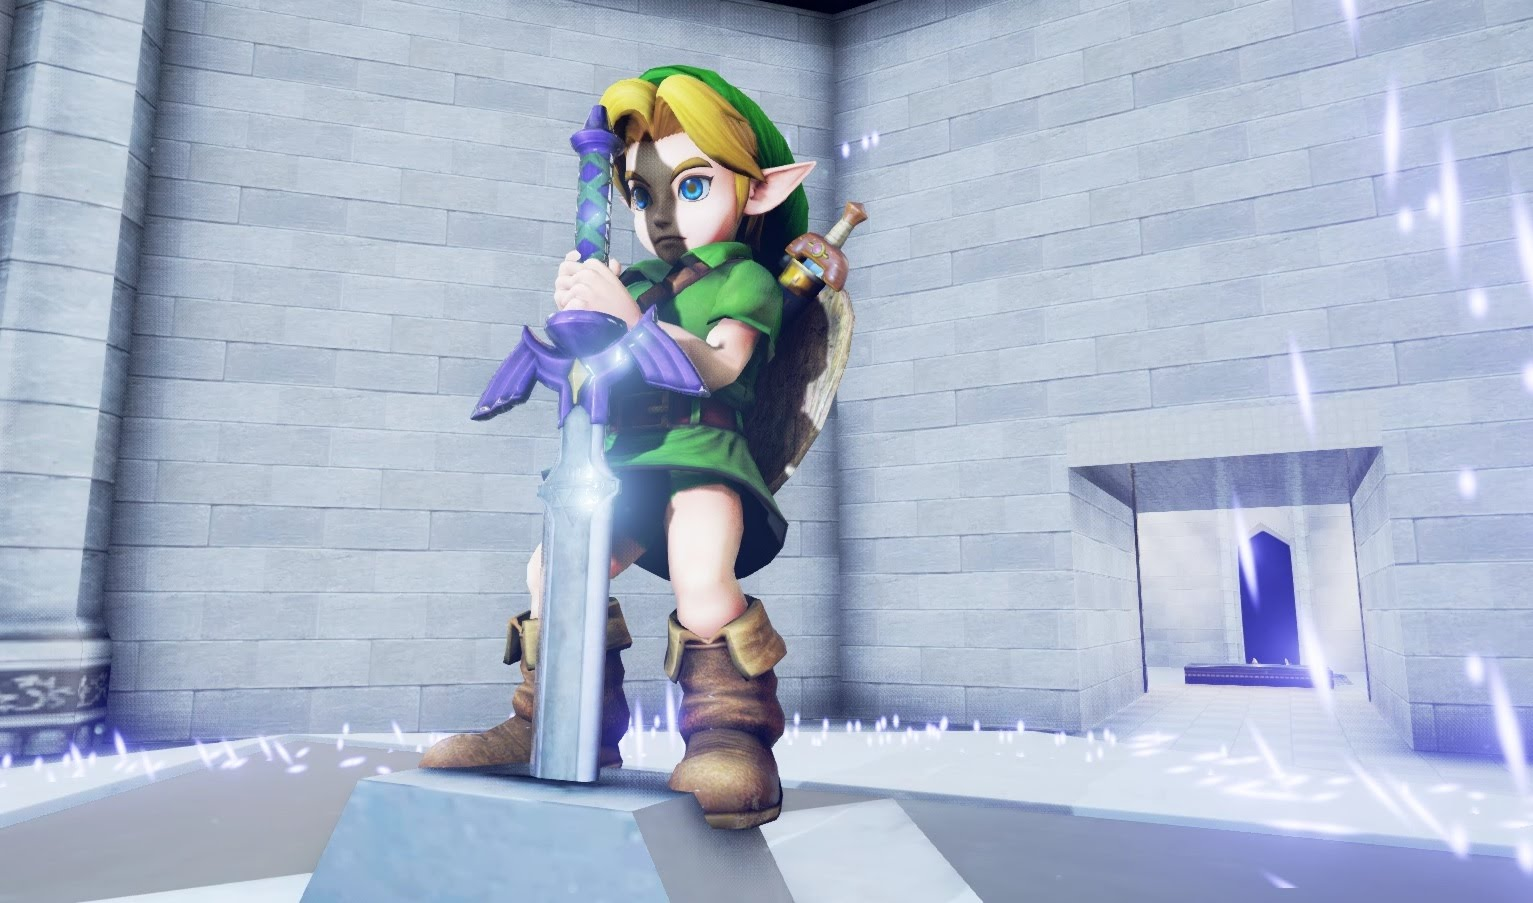 Grezzo Hiring to Bring HD Zelda Games to Switch